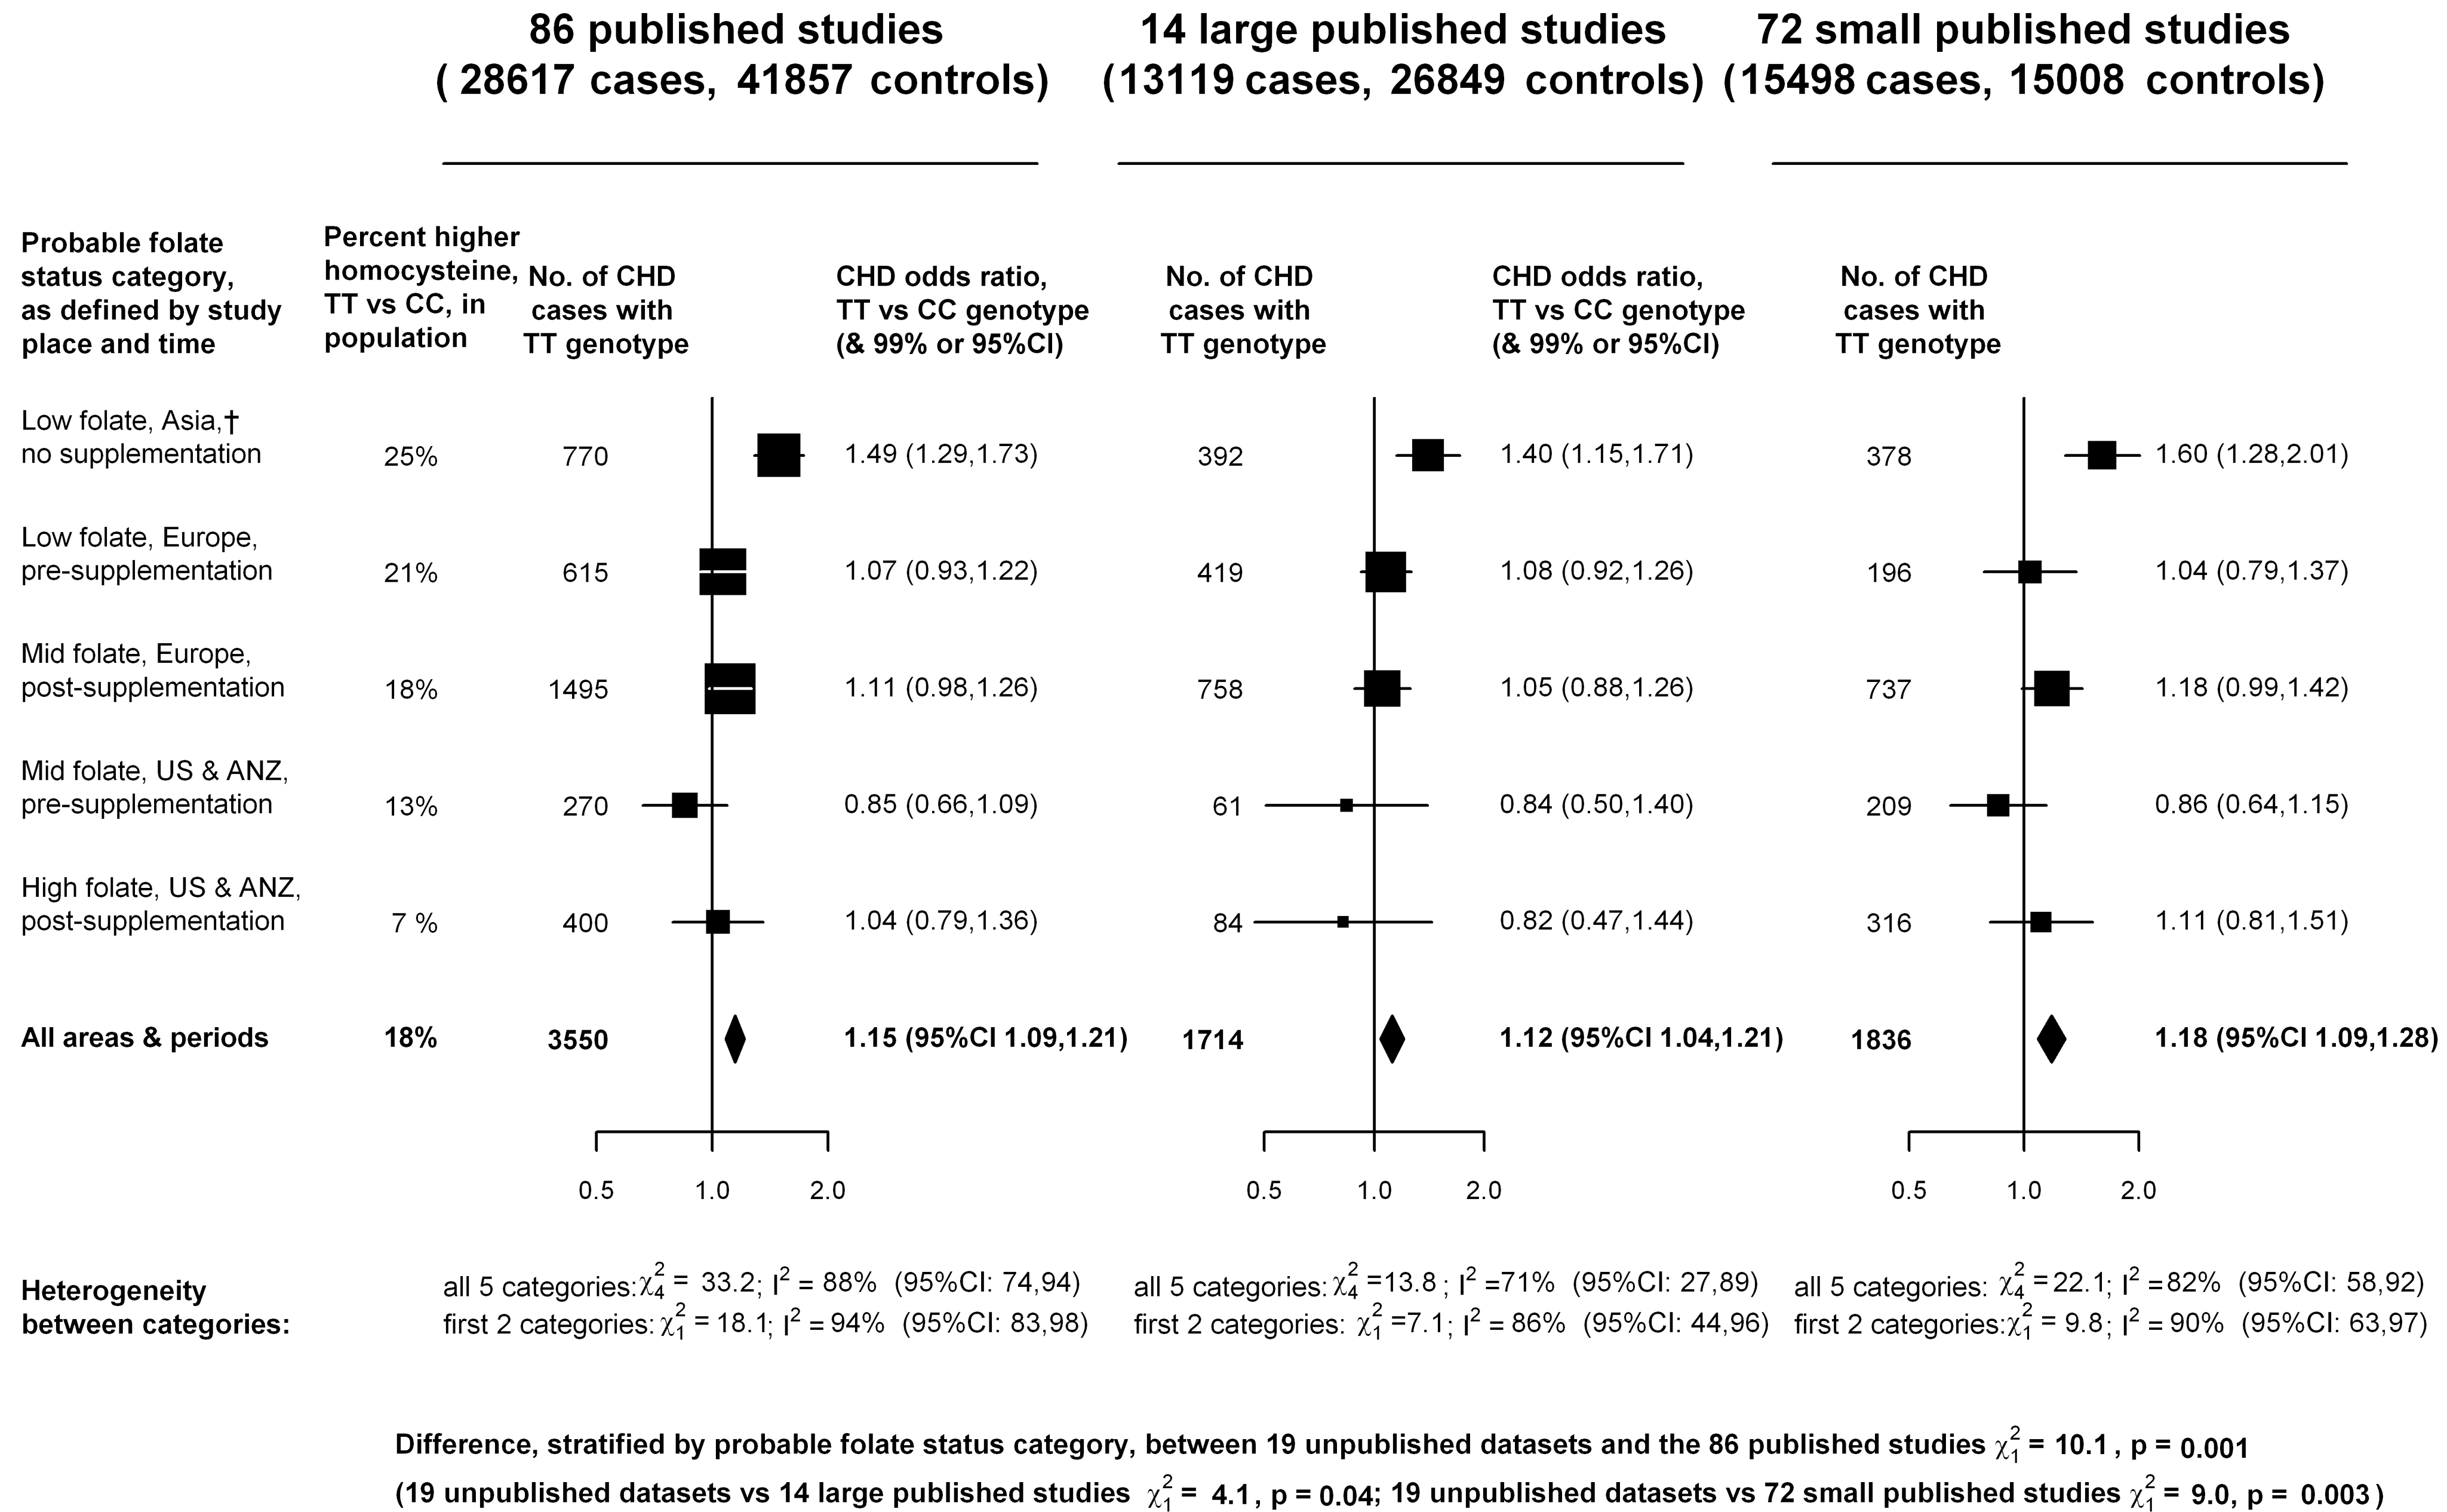 Homozygote CHD OR (TT versus CC <i>MTHFR</i> C677T genotype) in each probable folate status category, from meta-analyses of 86 published studies, 14 large (i.e., variance of log OR less than 0.05) and 72 smaller studies.